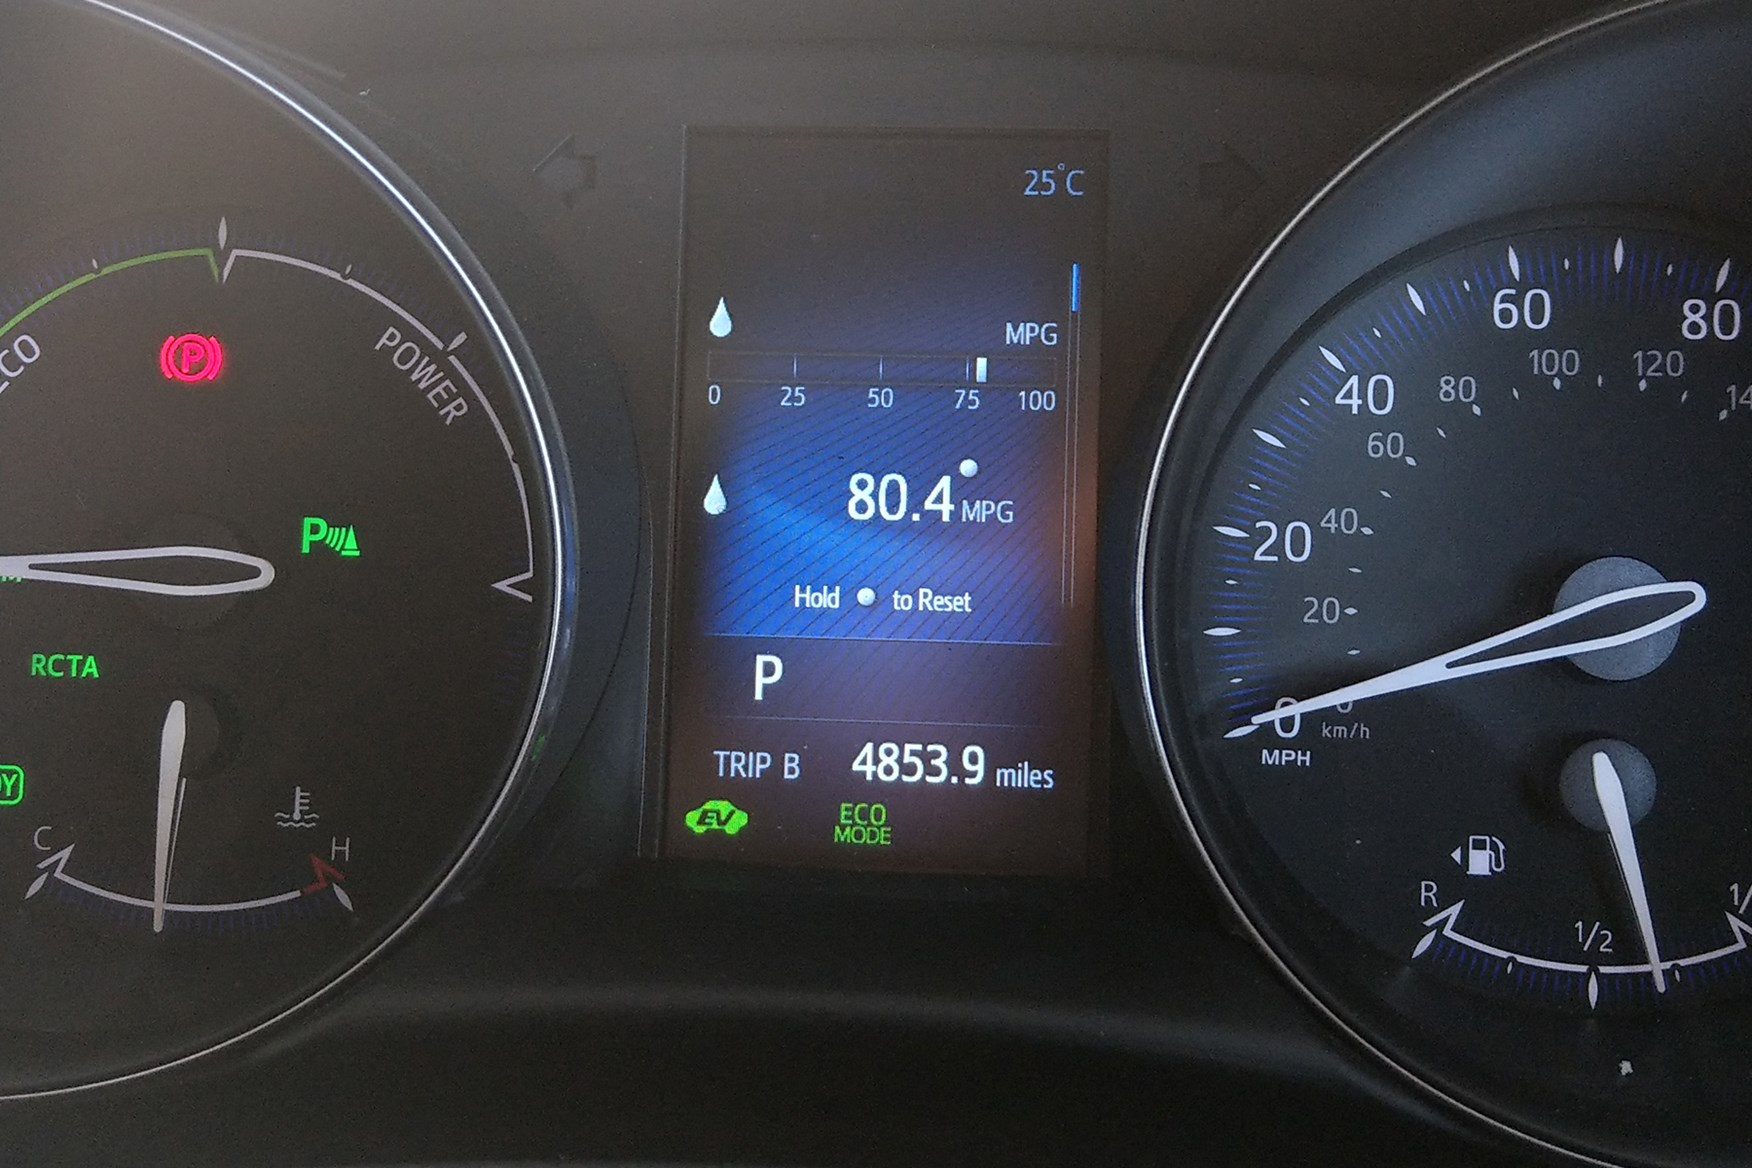 Toyota C-HR displaying 80.6mpg fuel economy following our eco drive around the M25